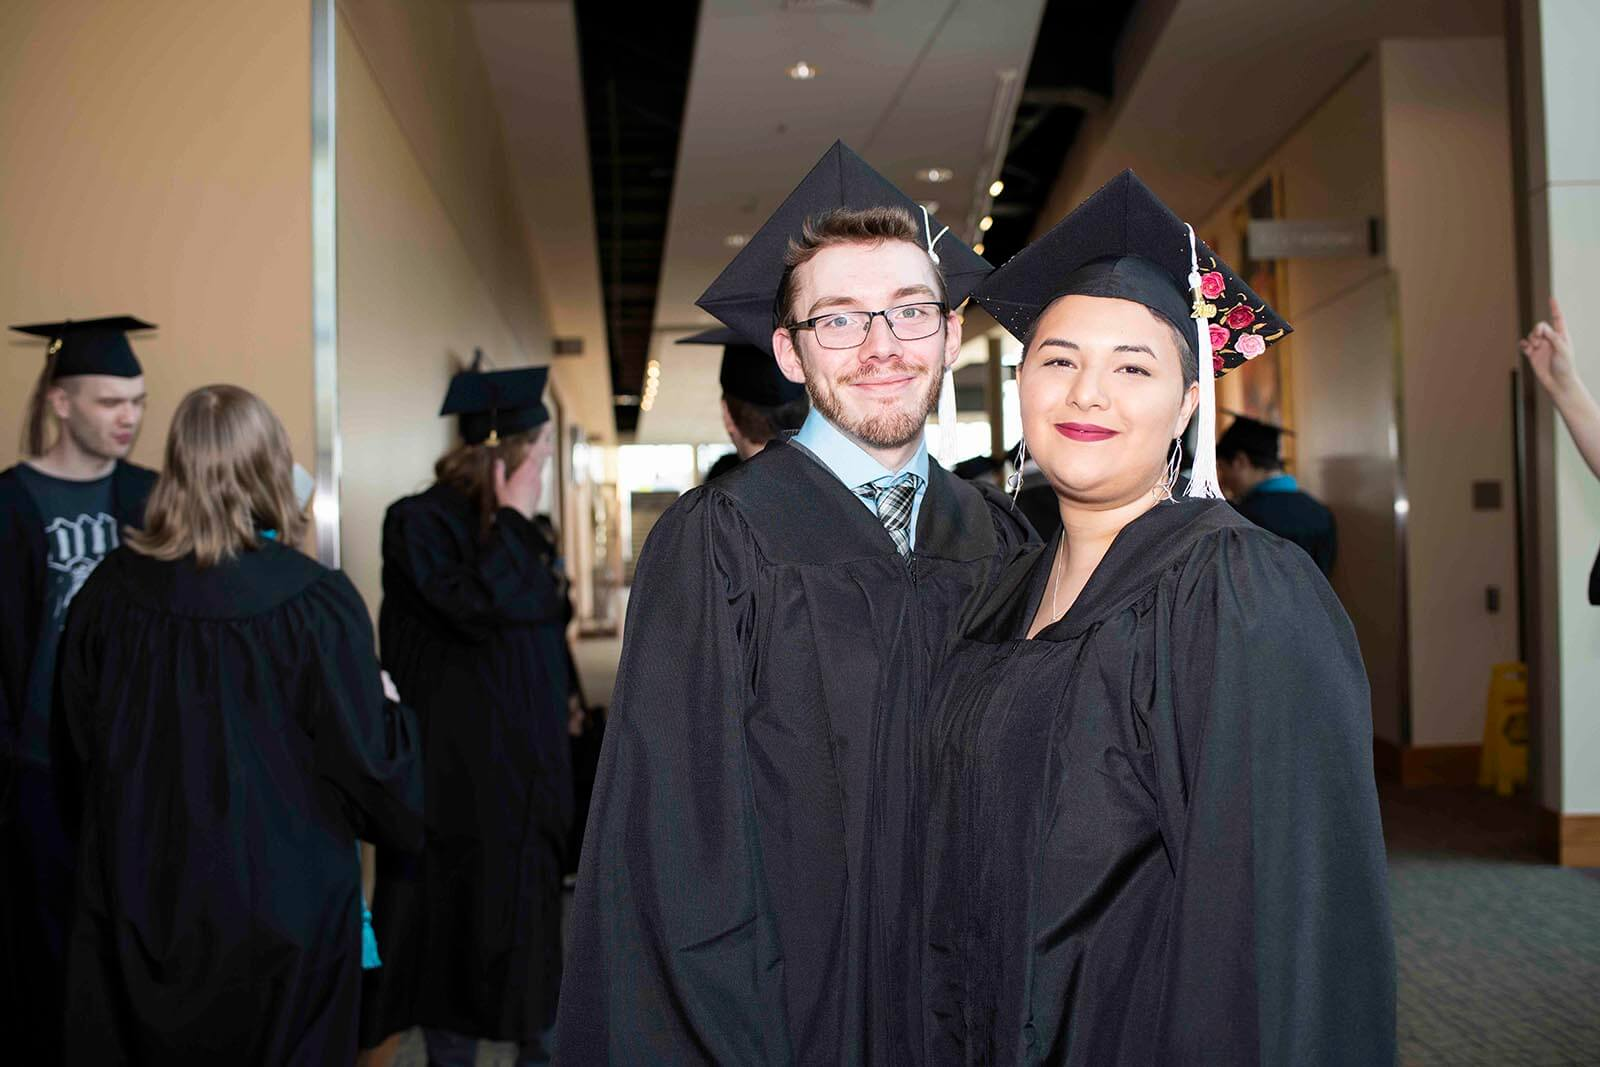 Two students in black graduation garb pose for a photo in a convention center hallway.